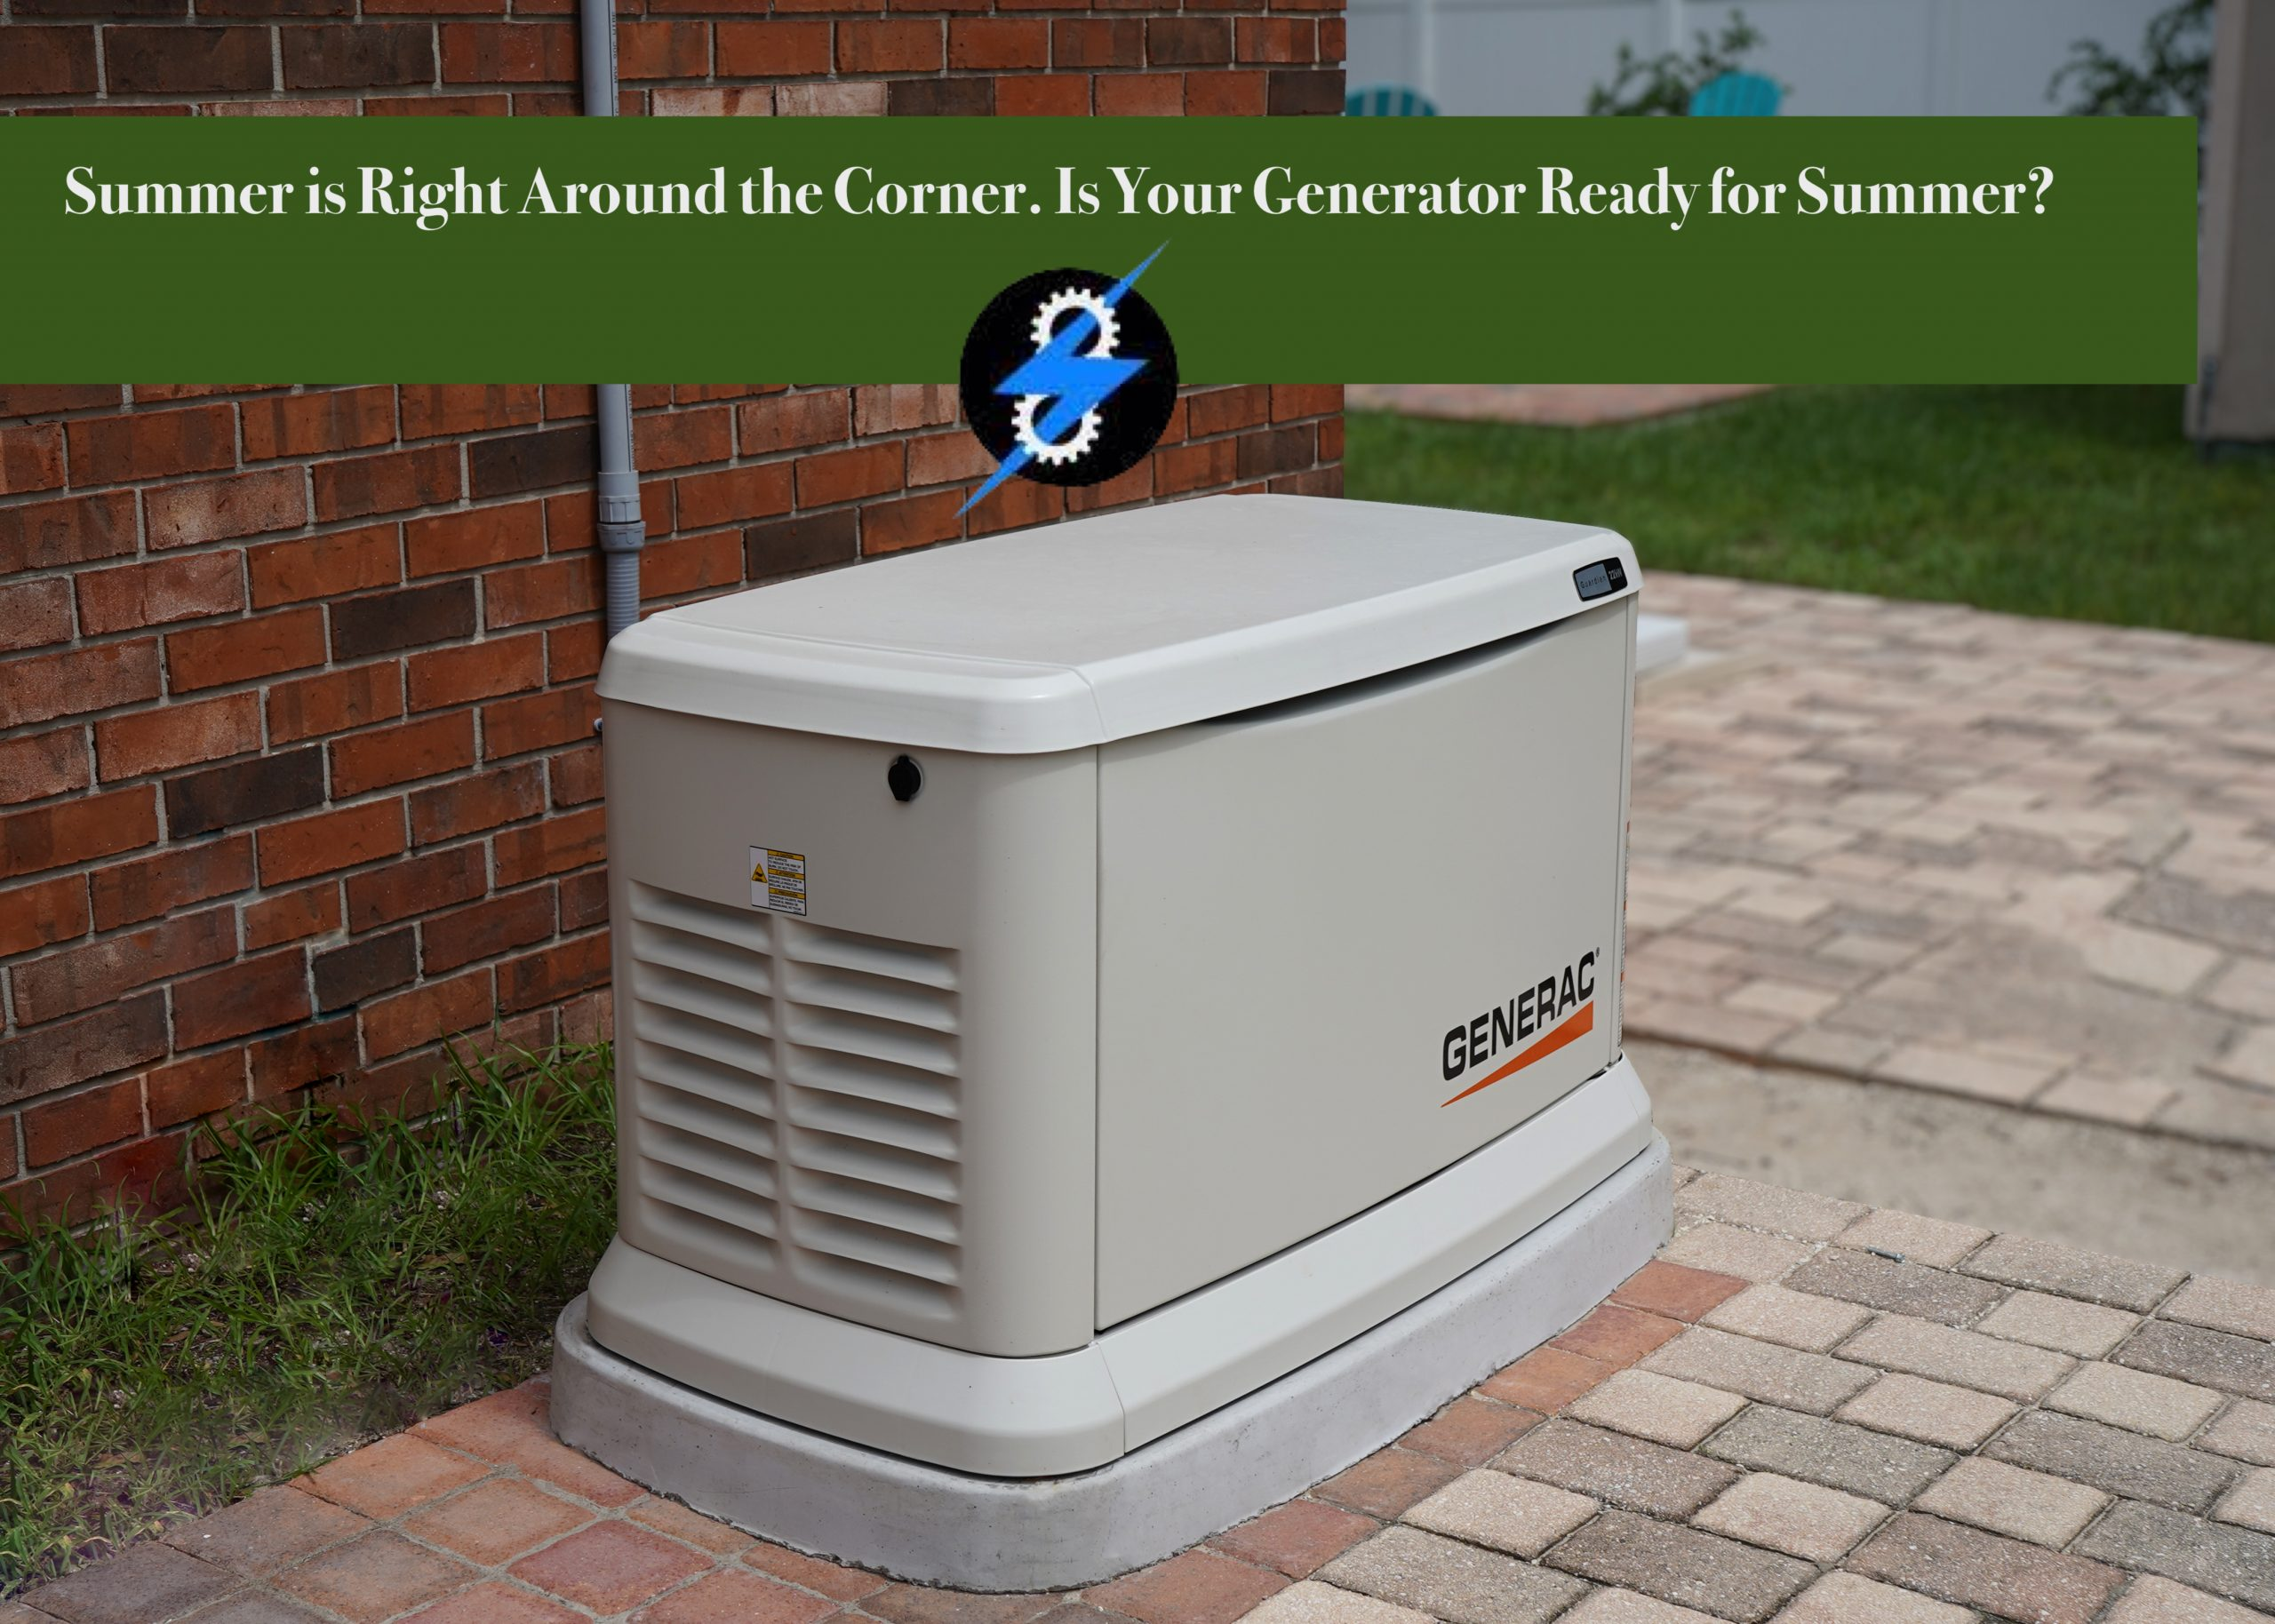 Is Your Generator Ready For Summer?